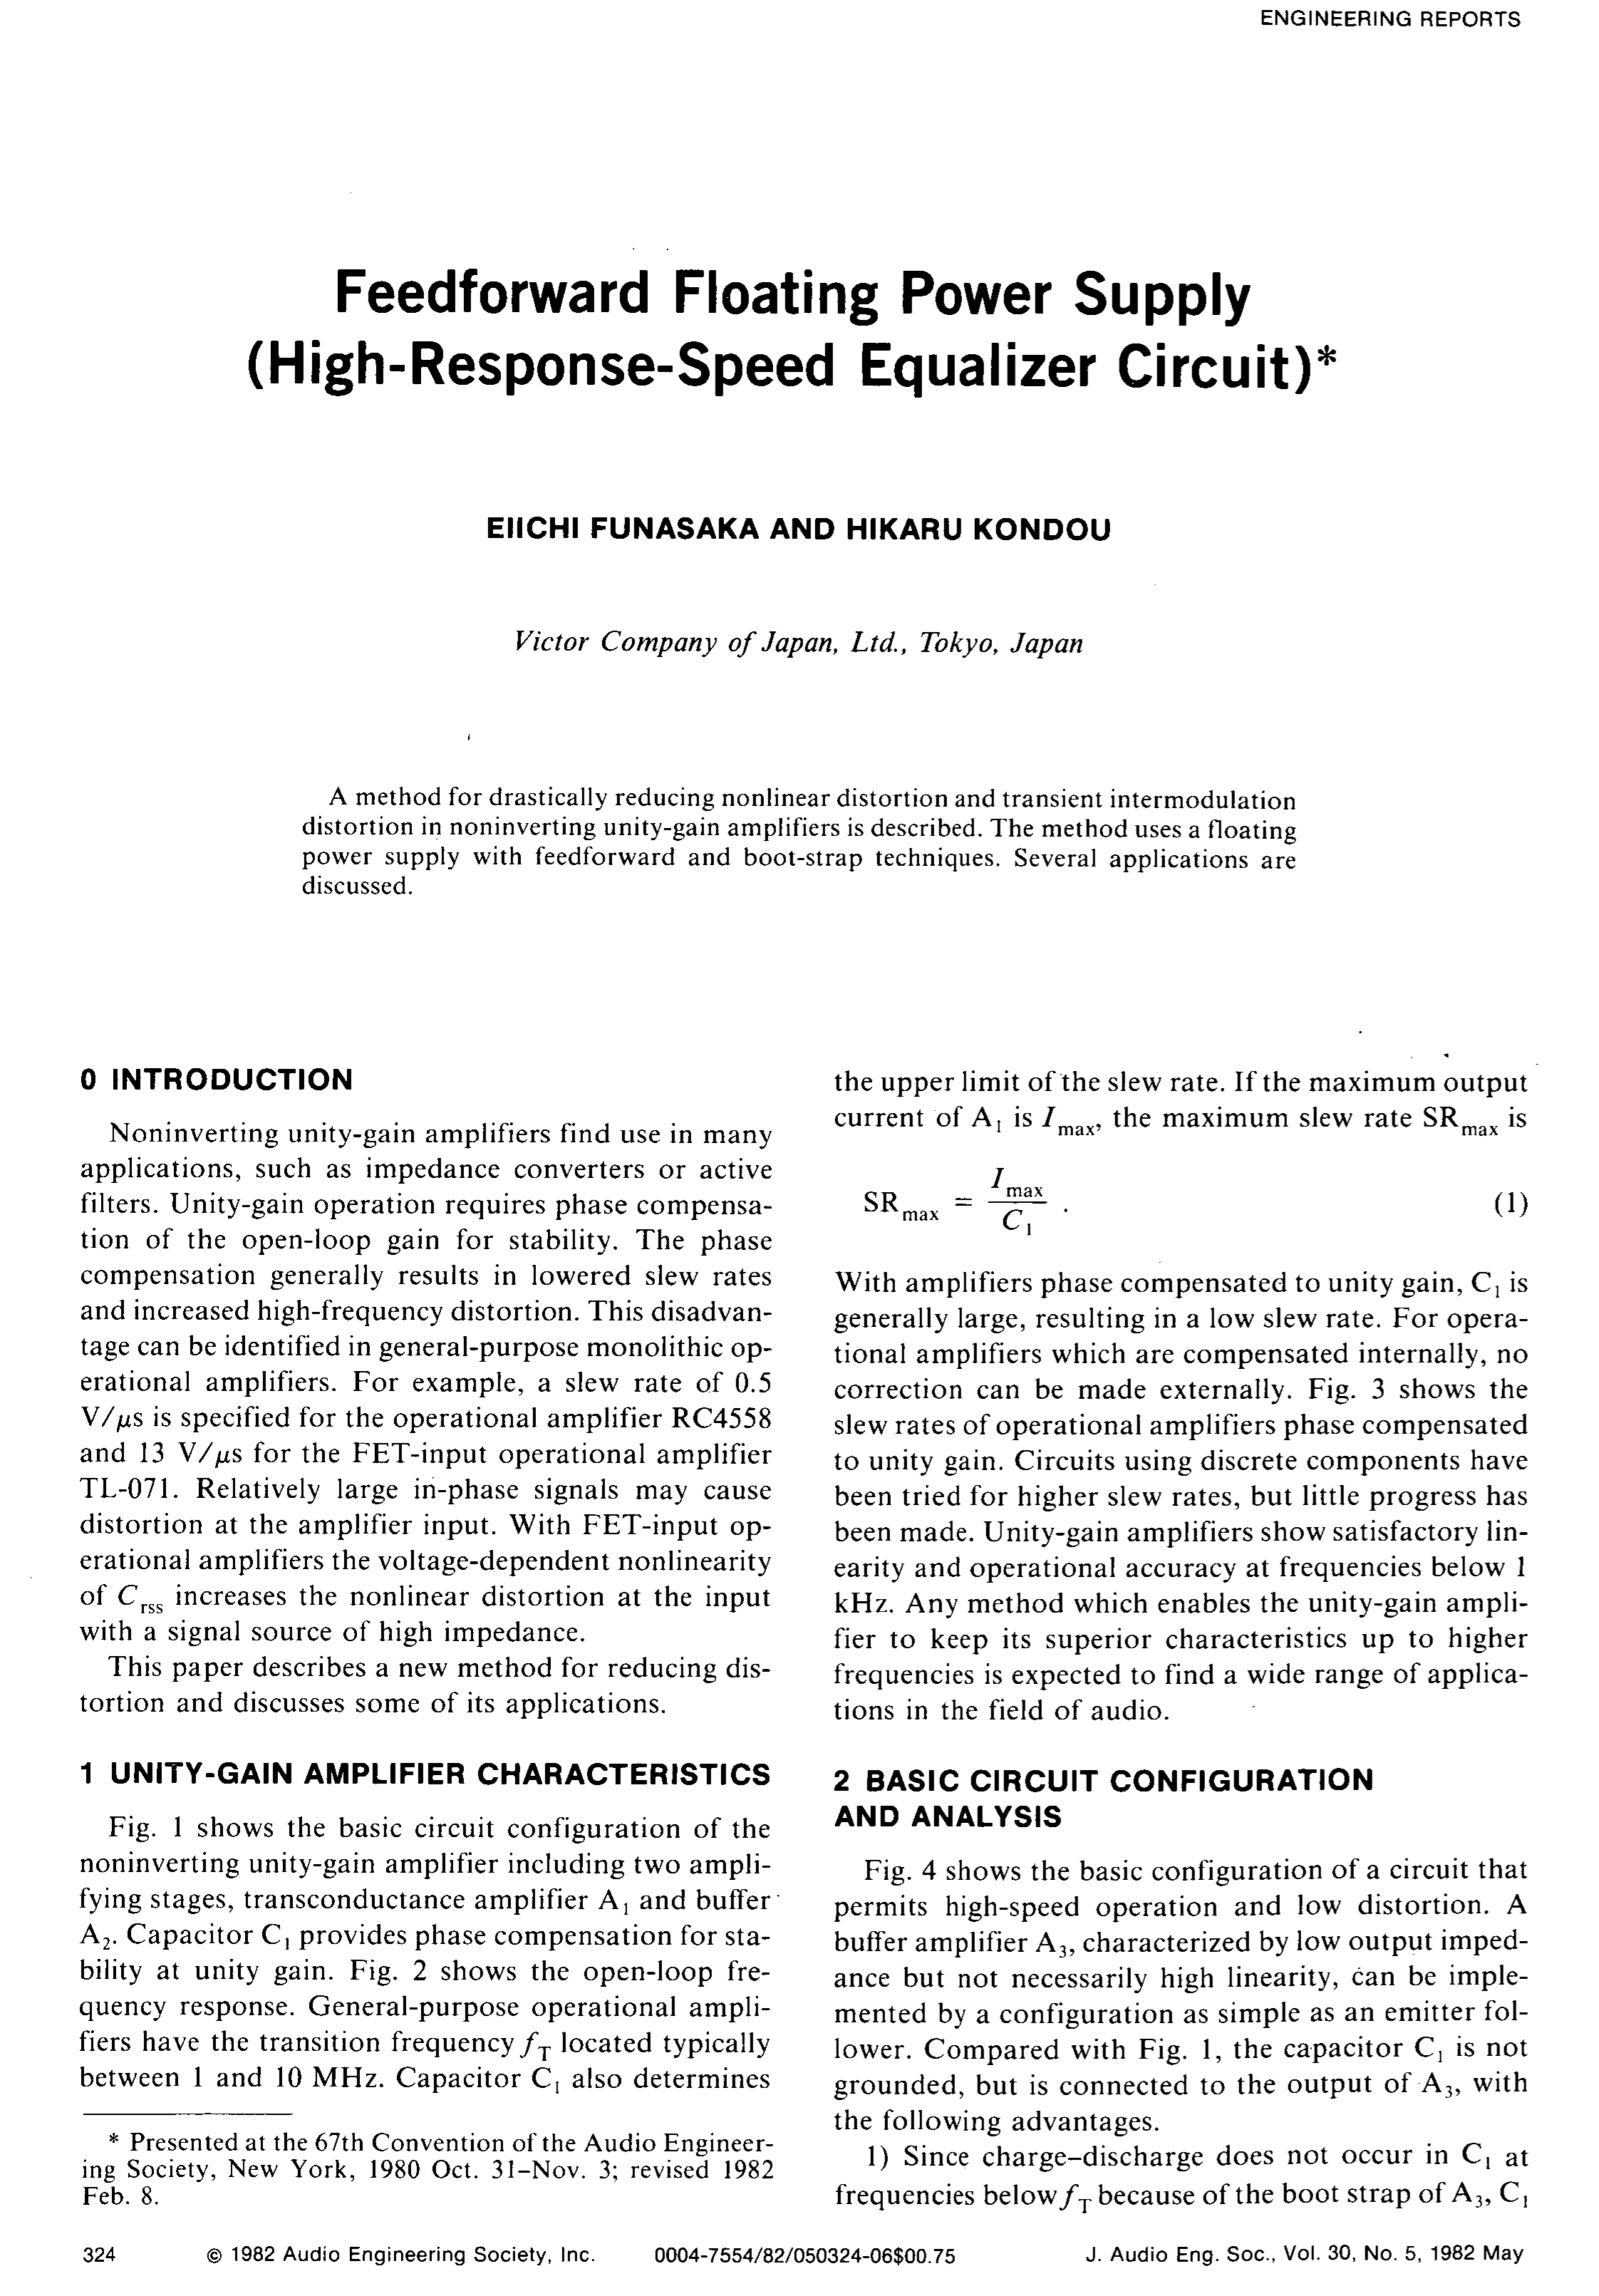 Aes E Library Feedforward Floating Power Supply High Response Equalizer Amplifier Circuit Speed